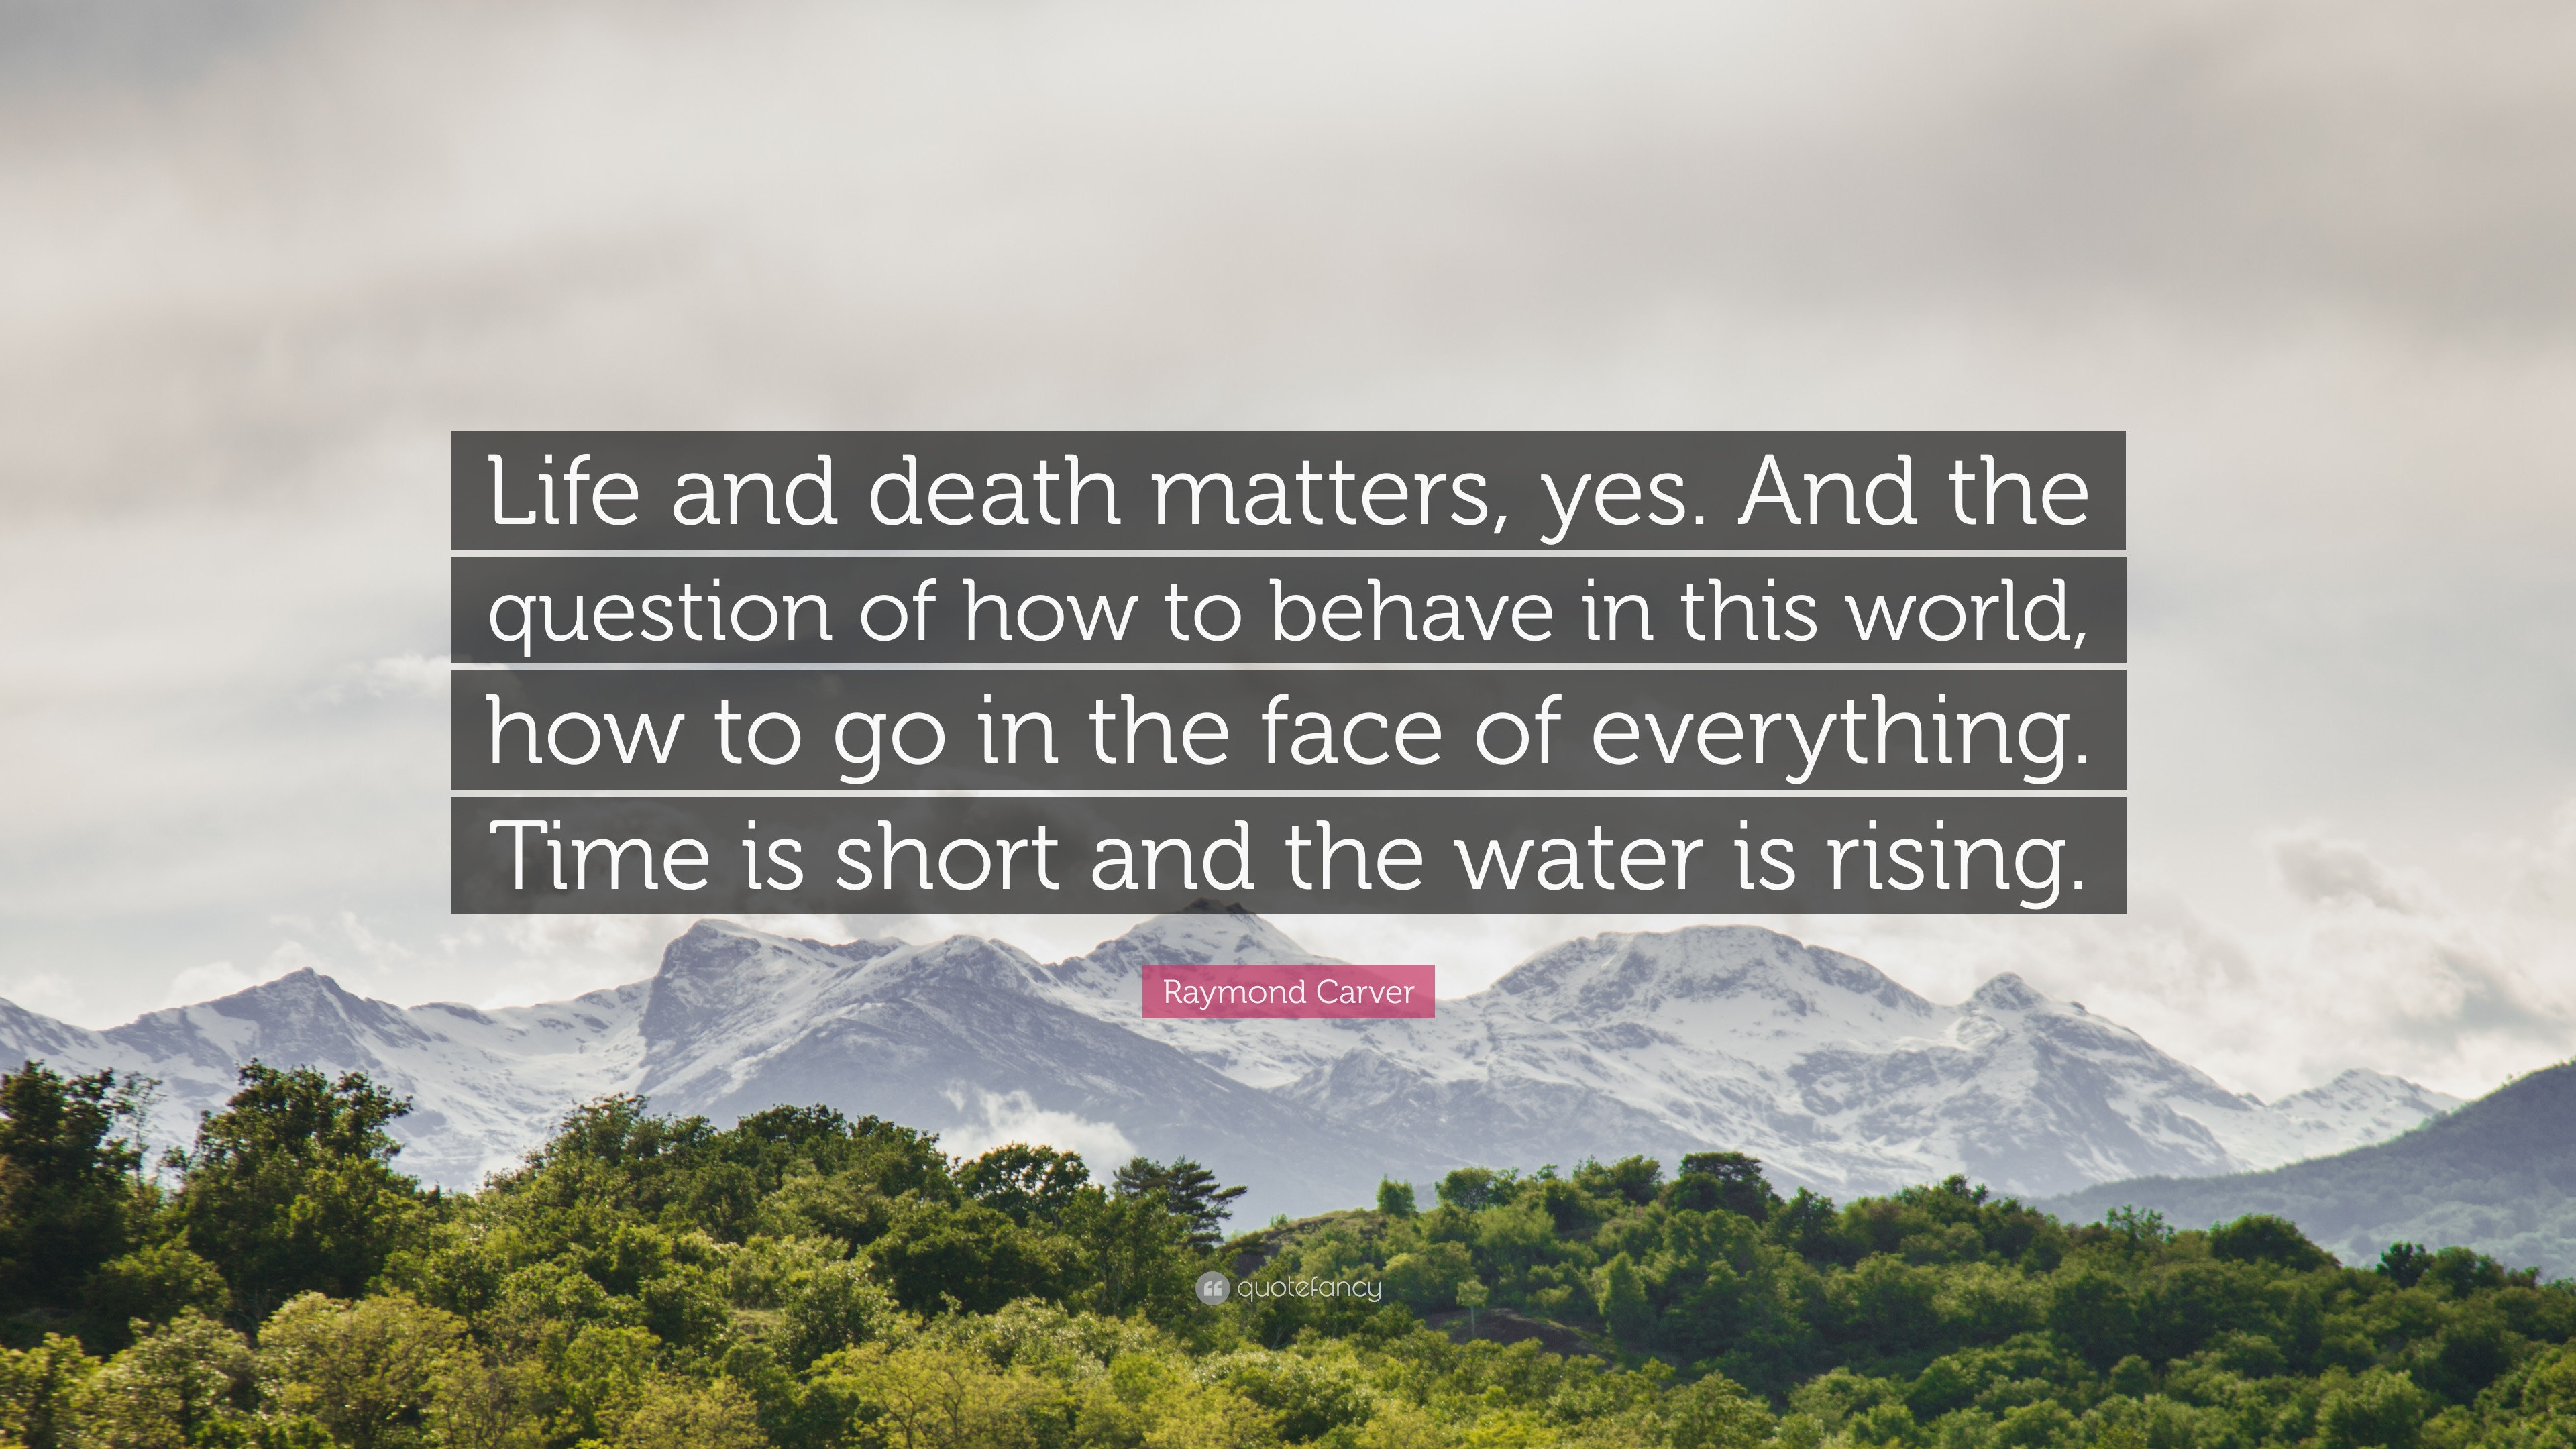 Raymond Carver Quote Life And Death Matters Yes And The Question